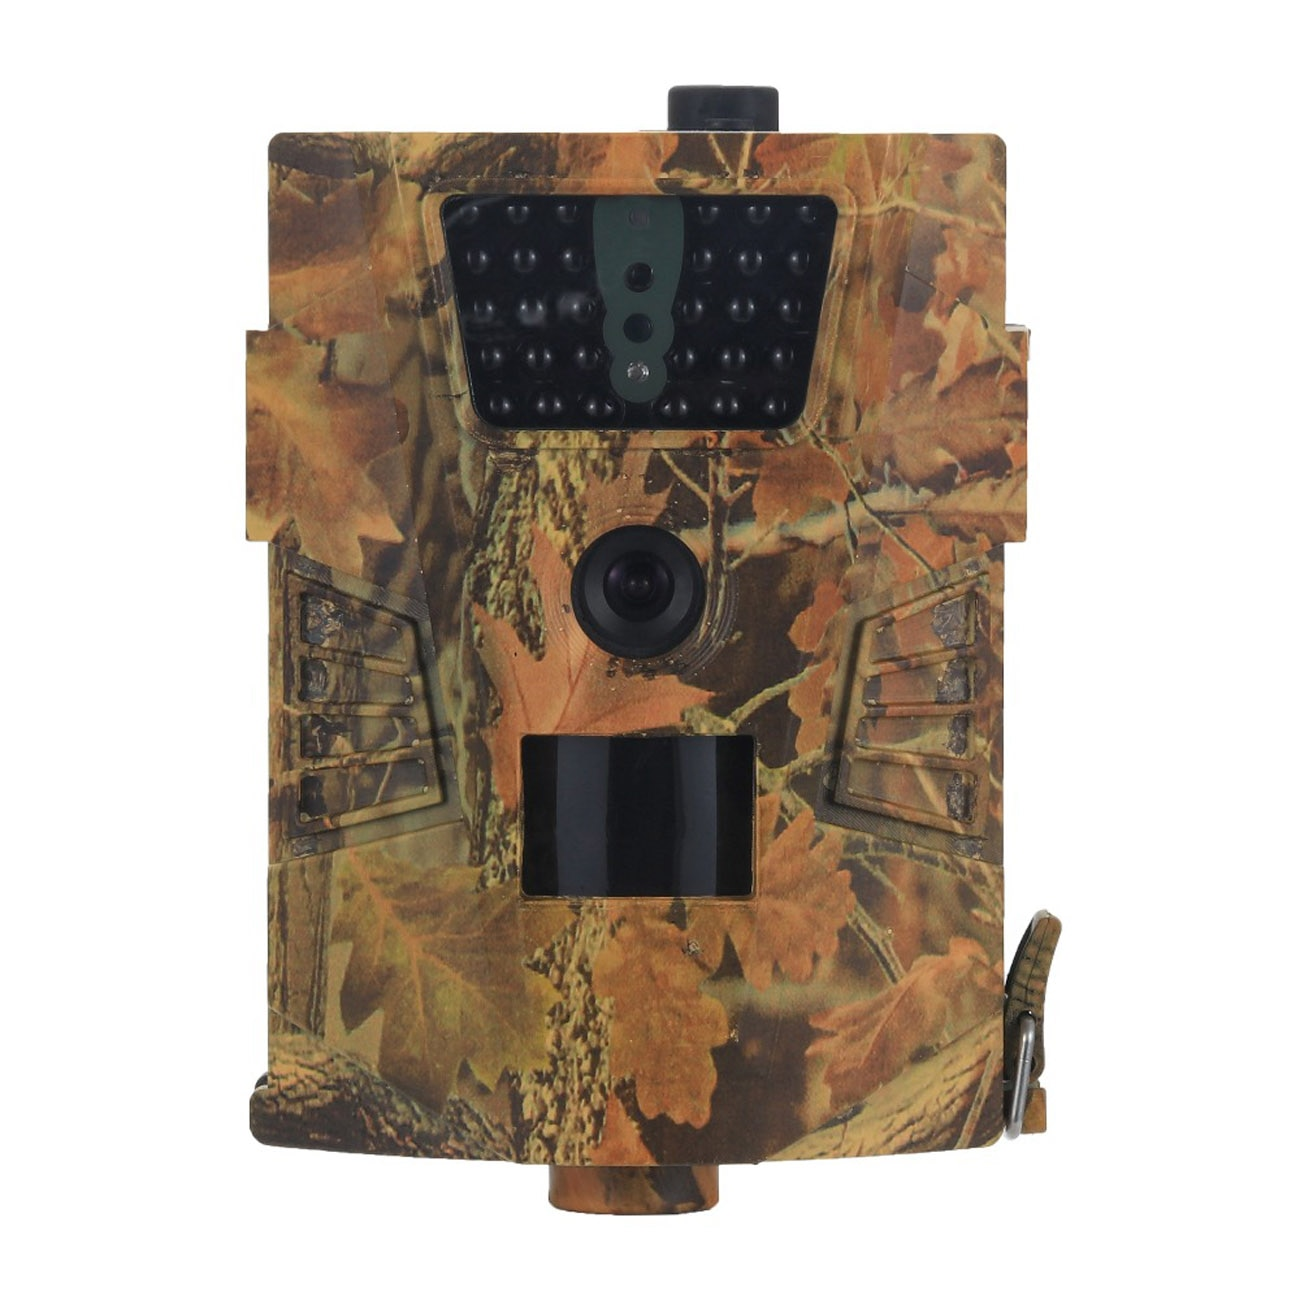 mini trail game camera night vision 1080p 12mp waterproof hunting camera outdoor wild photo traps with ir leds range up to 65ft HT001B Trail Camera 12MP 1080P 850nm IR LED 1s Trigger Time Wild Hunting Cameras Night Vision Wildlife Animal Photo Traps Camera